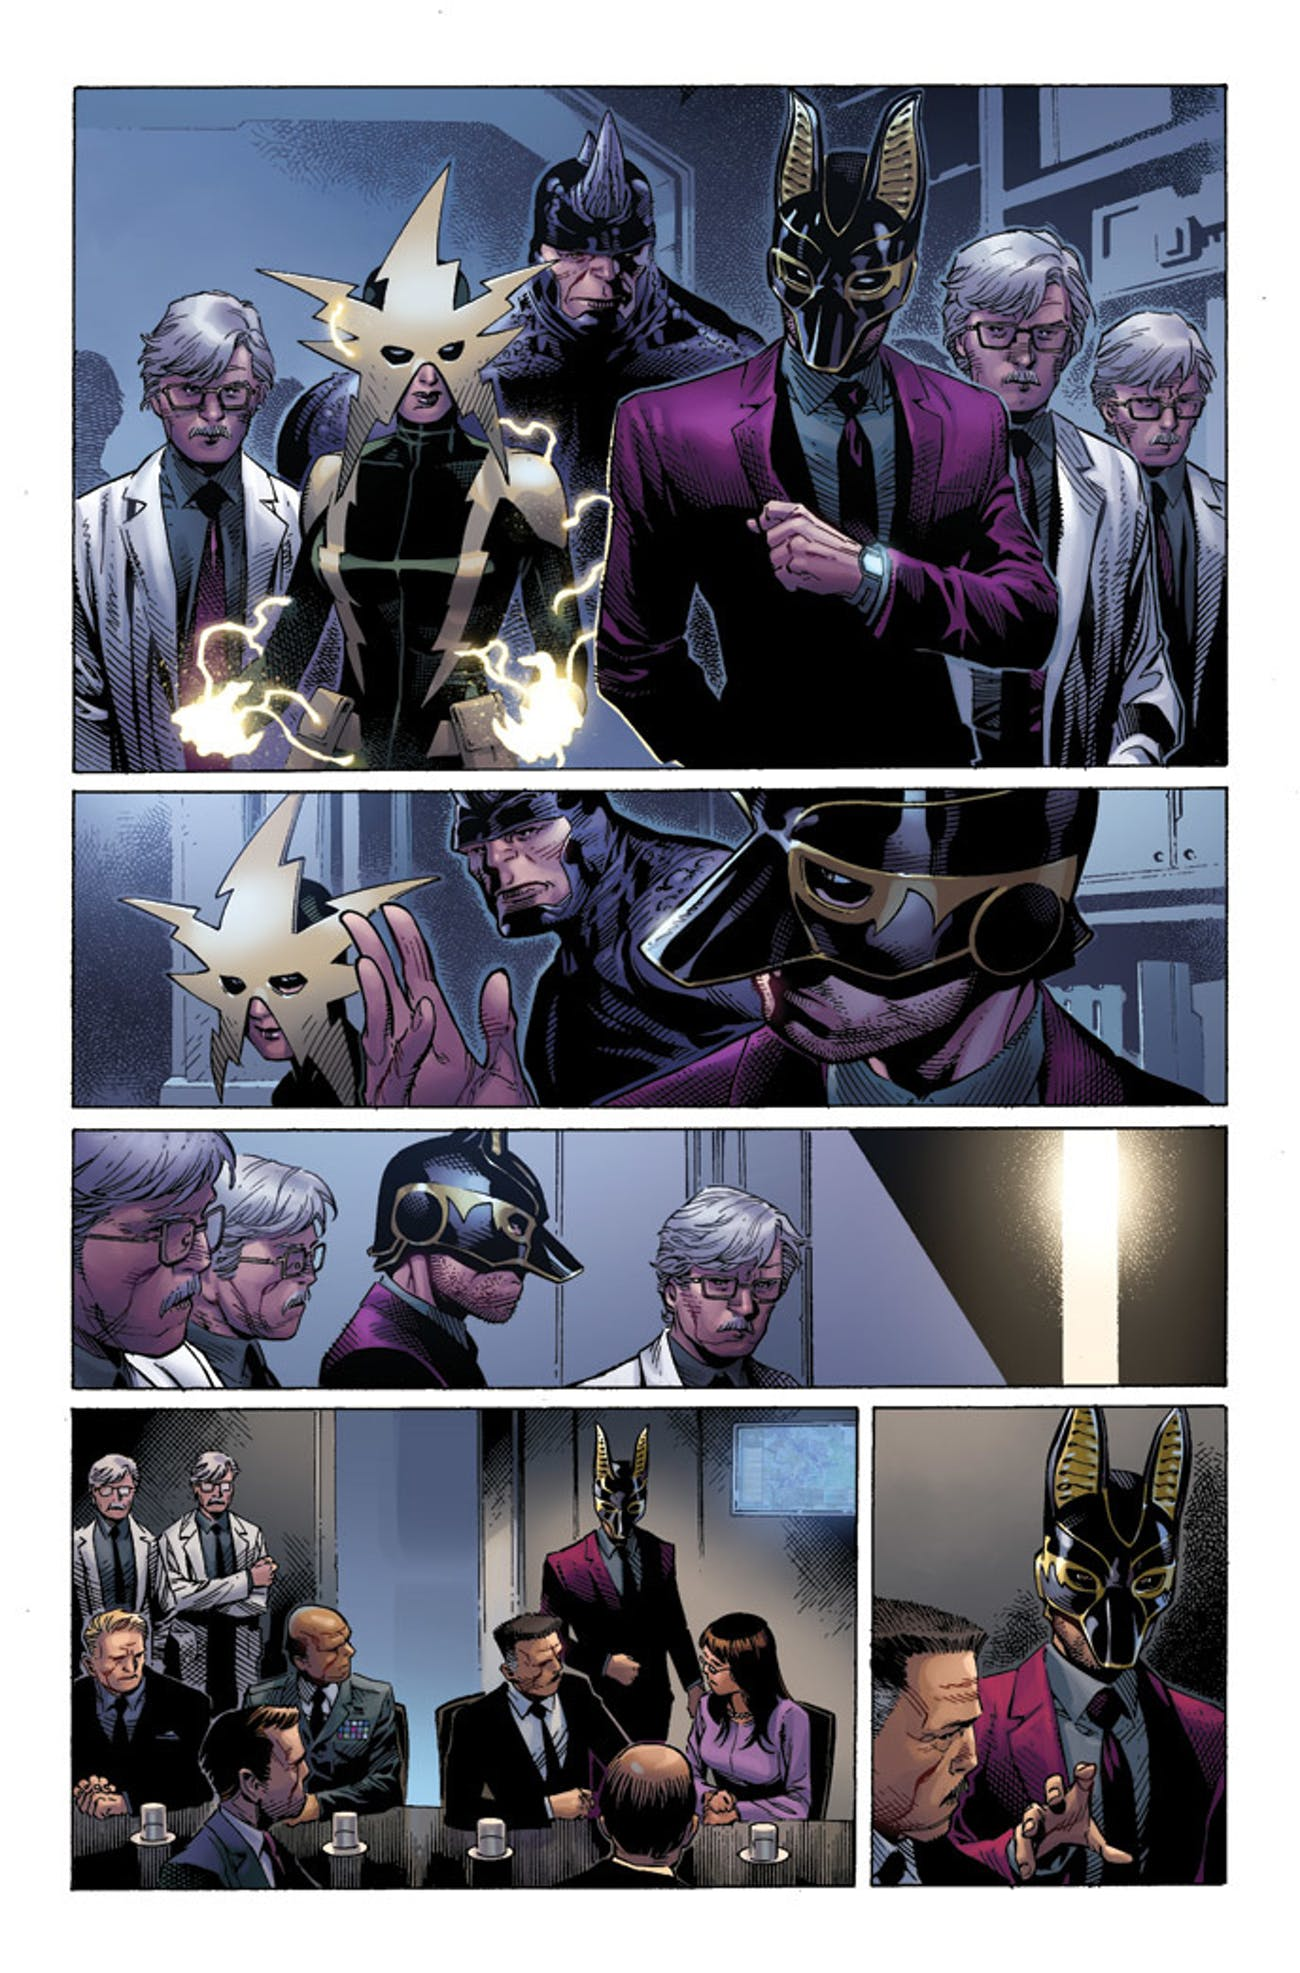 Jackal in The Amazing Spider-Man the Clone Conspiracy Marvel Comics